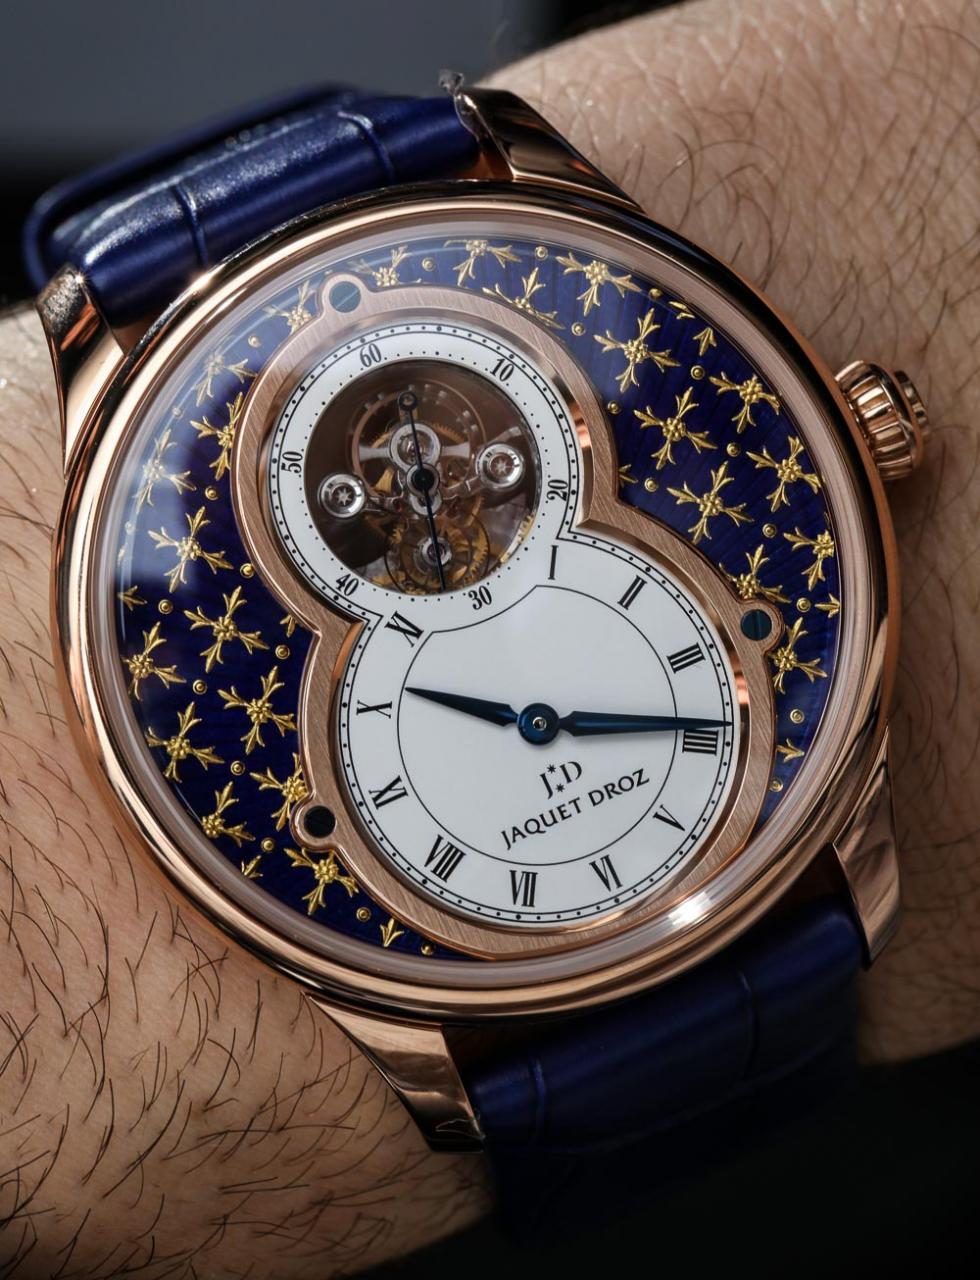 Jaquet Droz Grande Seconde Tourbillon Paillonnée Replica Watch Hands-On Hands-On